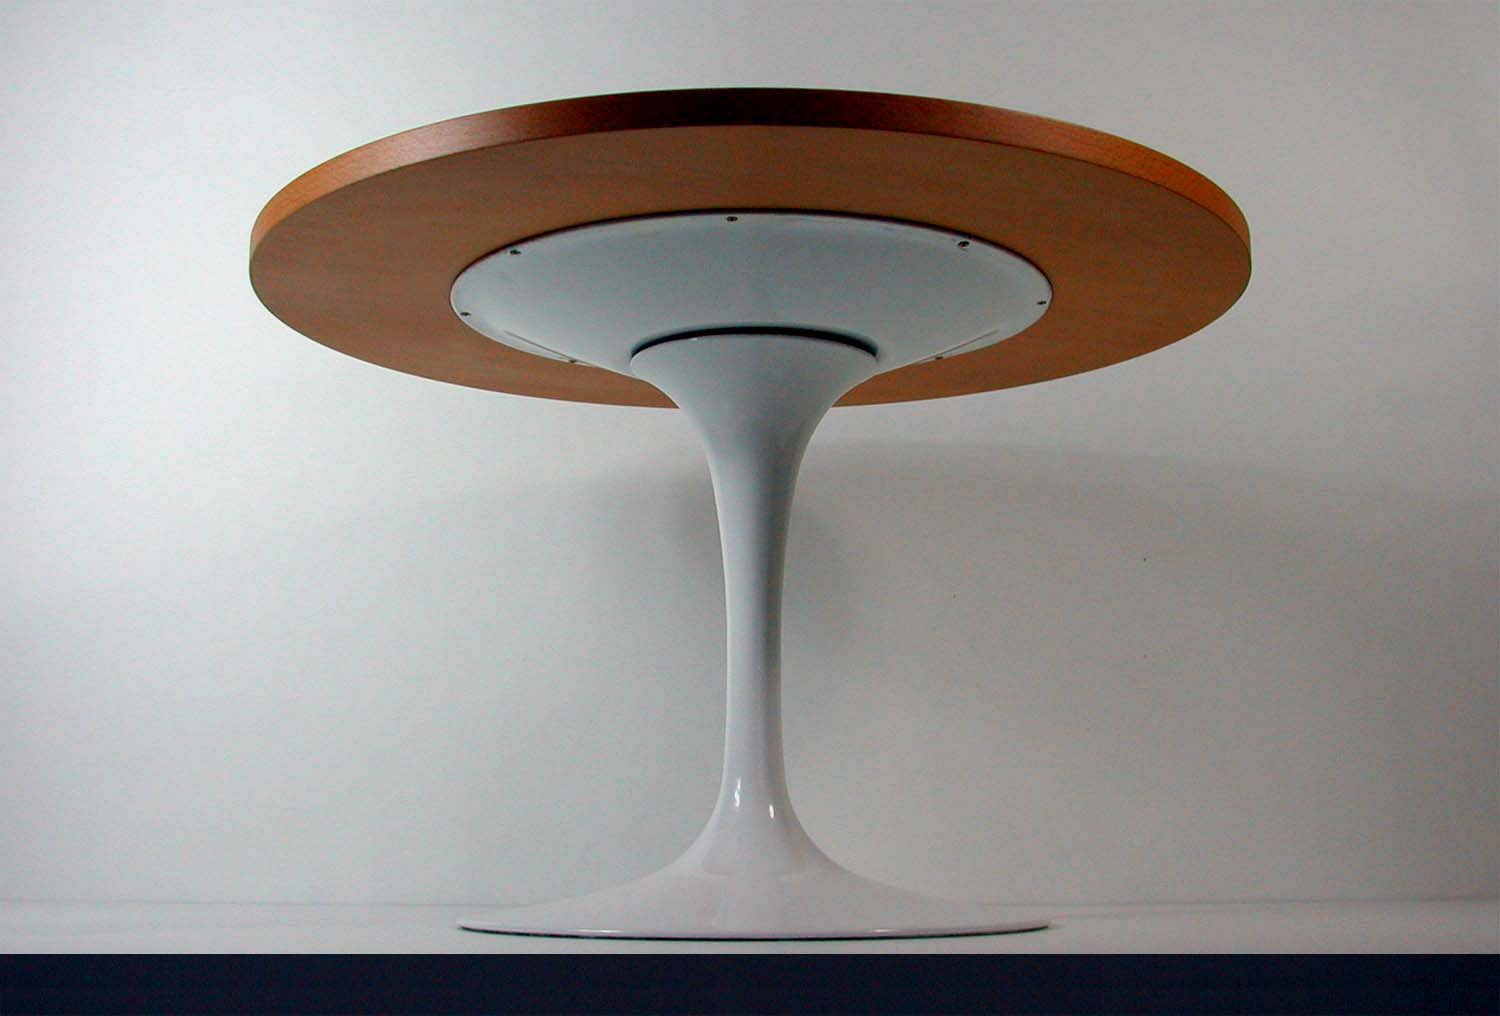 Tulip Base Lazy Susan Coffee Table By Eero Saarinen For